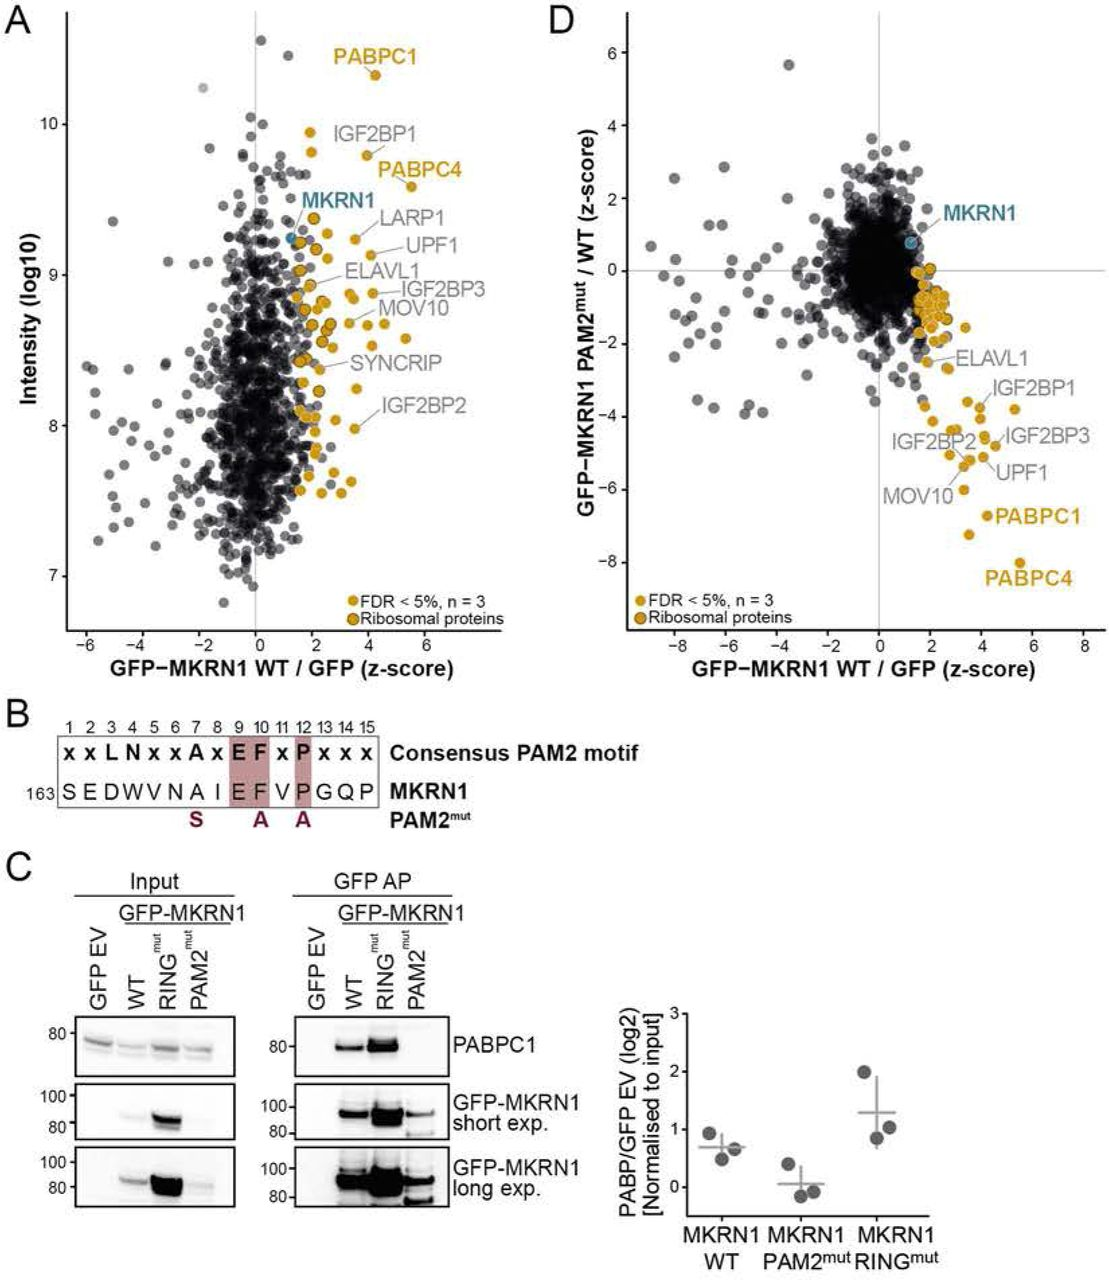 MKRN1 interacts with PABP and other regulators of translation and RNA stability. ( A ) Protein interactome of GFP-MKRN1 wt in HEK293T cells analysed by quantitative MS-based proteomics. Combined SILAC ratios (n = 3 replicates) after z-score normalisation are plotted against log 10 -transformed intensities. 1,100 protein groups were quantified in at least two out of three replicate experiments. MKRN1 and significant interactors are highlighted (FDR